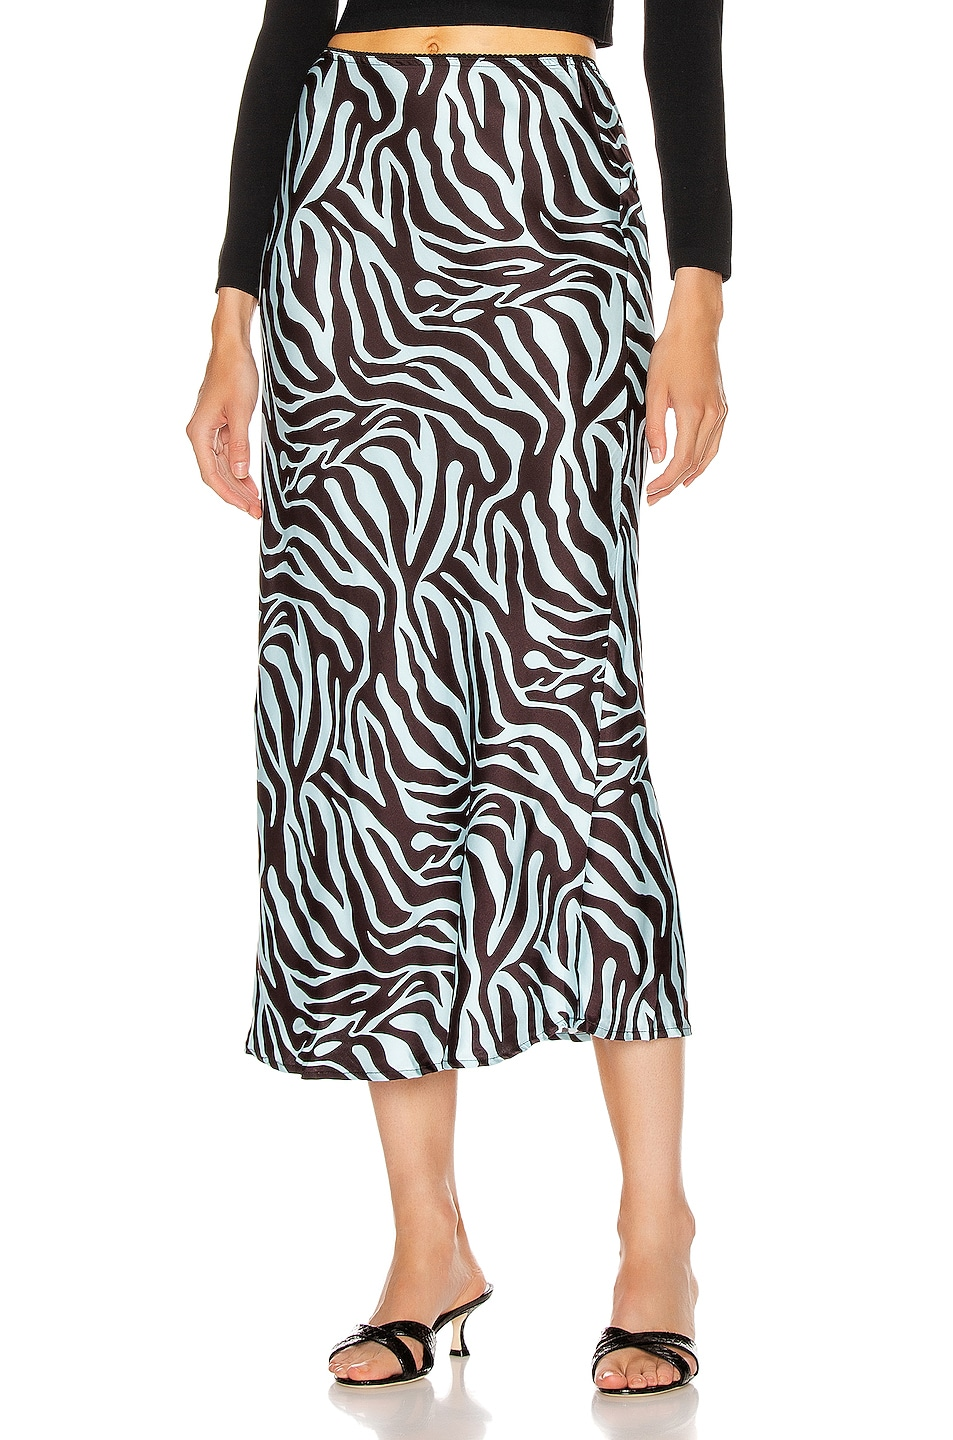 andamane bella midi skirt in zebra light blue fwrd. Black Bedroom Furniture Sets. Home Design Ideas